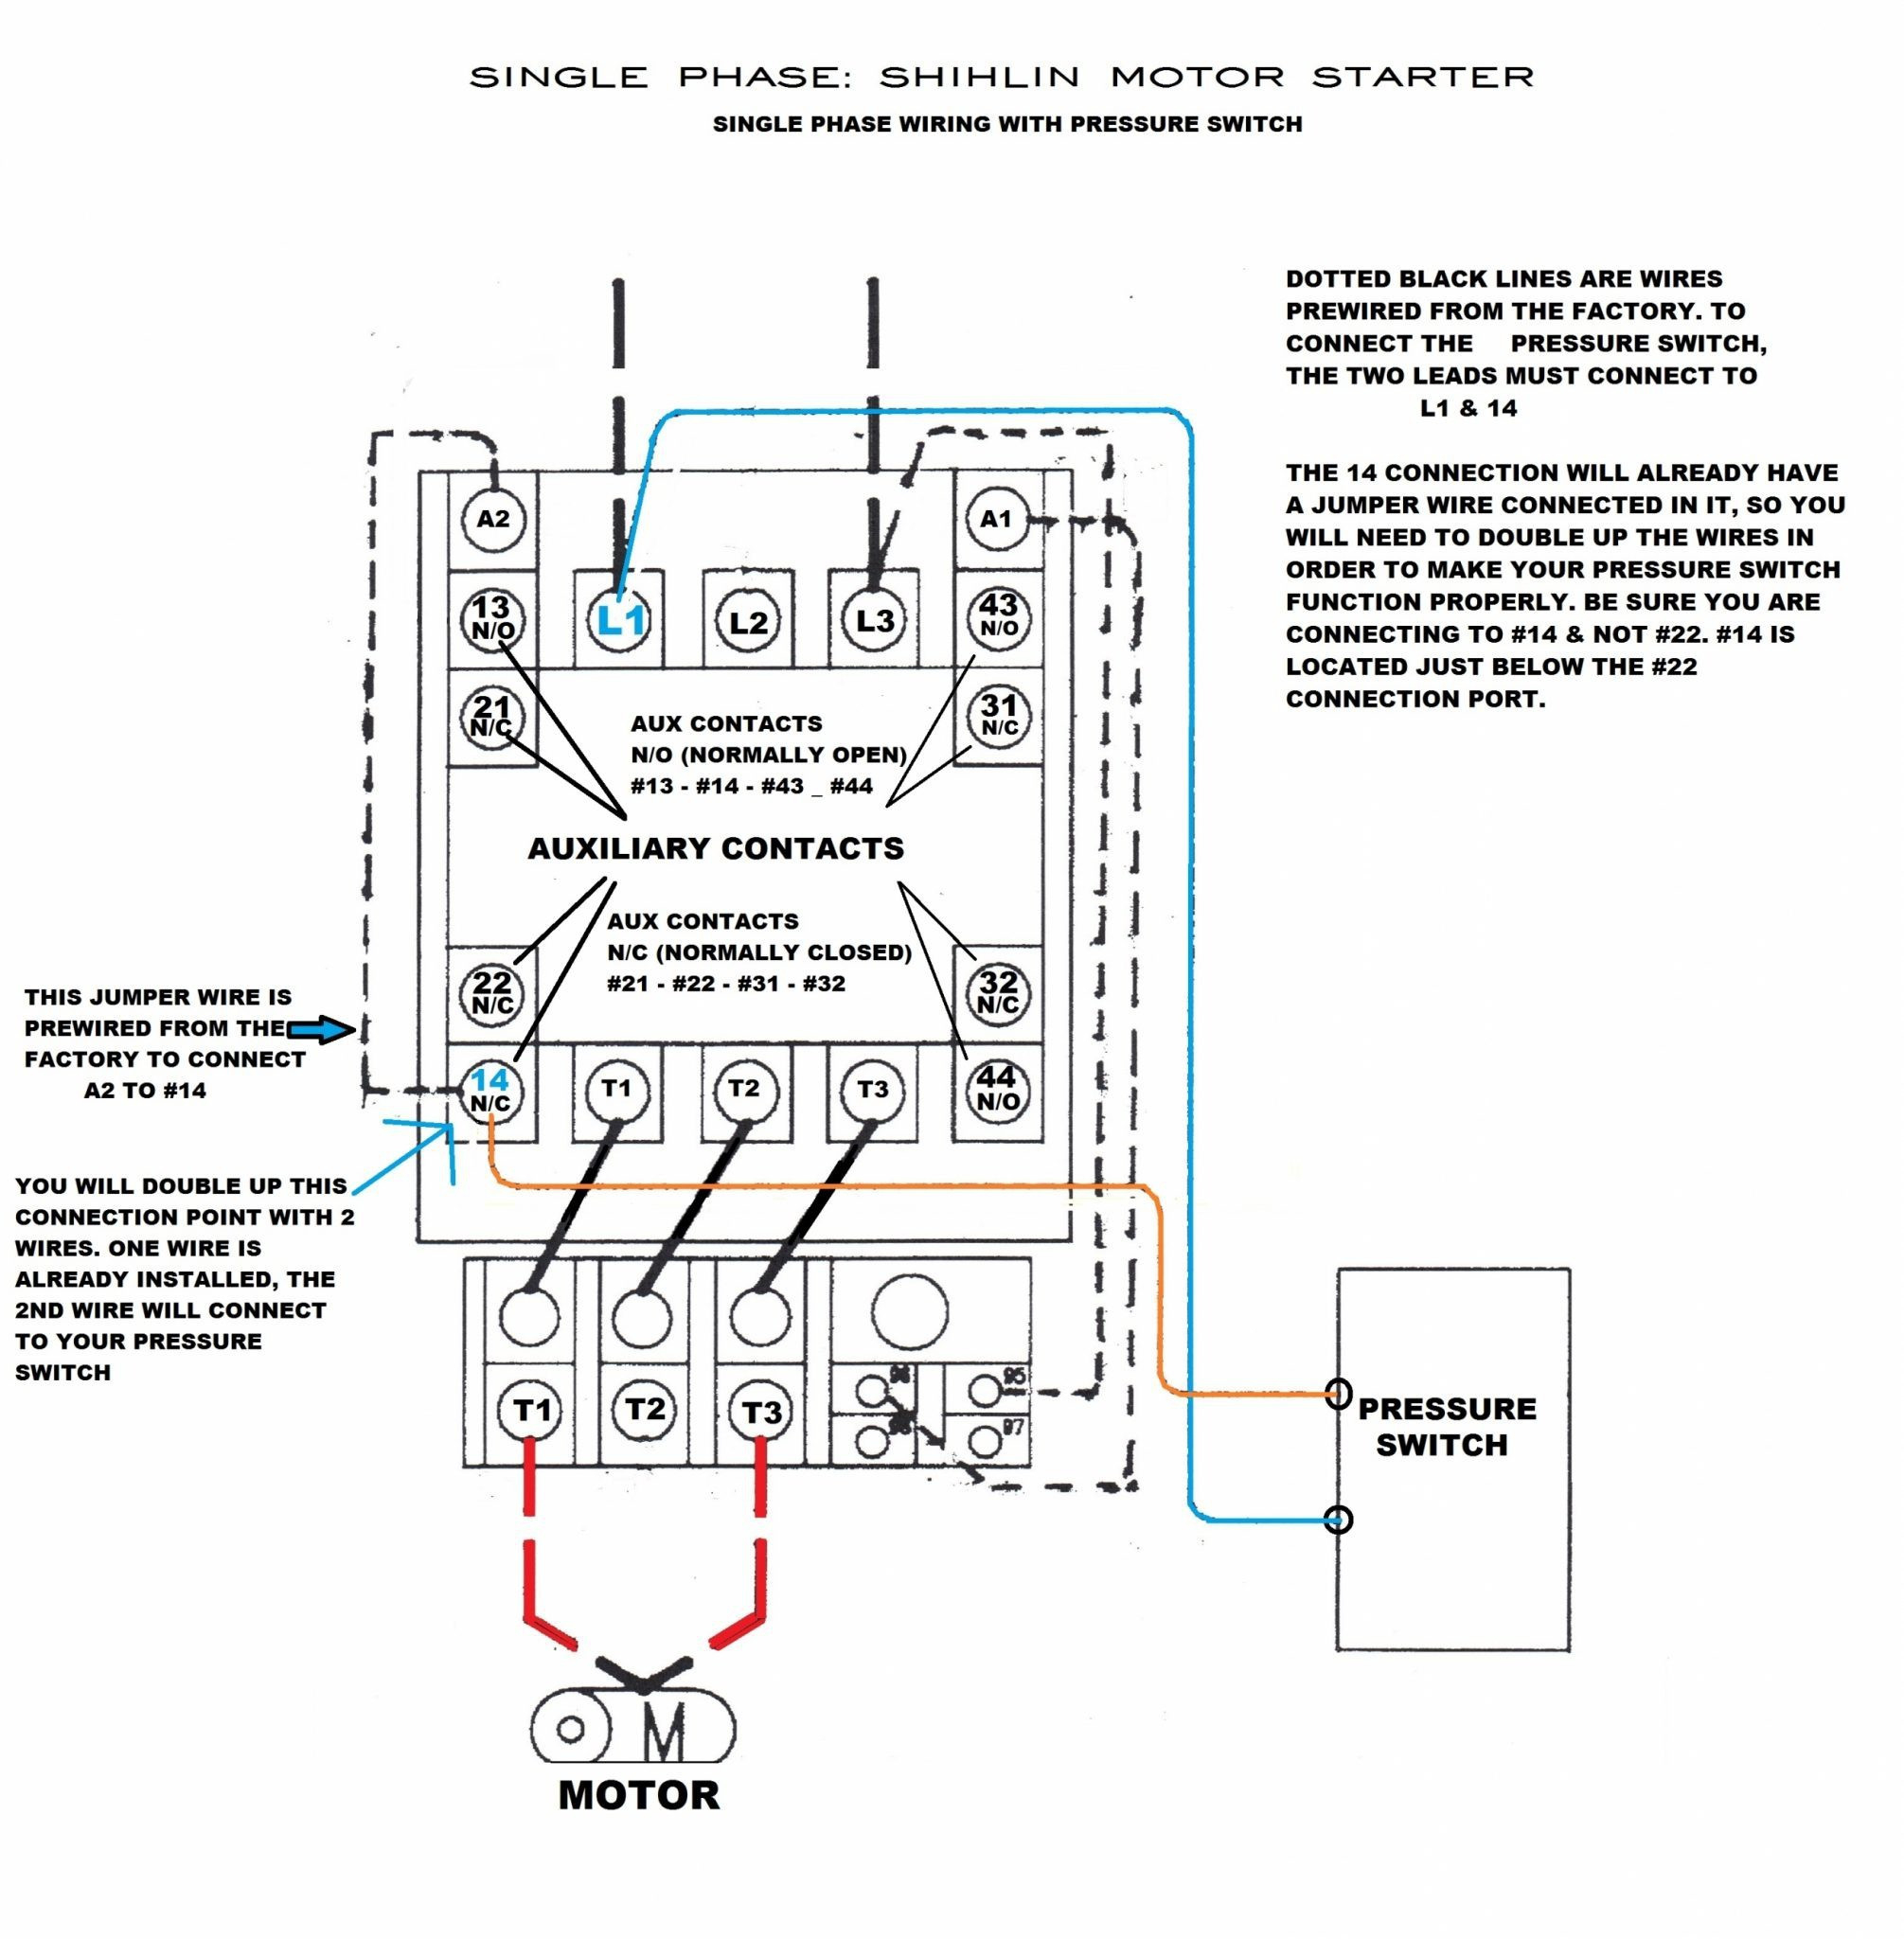 square d pressure switch wiring diagram Download-Square D Air pressor Pressure Switch Wiring Diagram Refrence Well Pump Pressure Switch Wiring Diagram originalstylophone 10-k